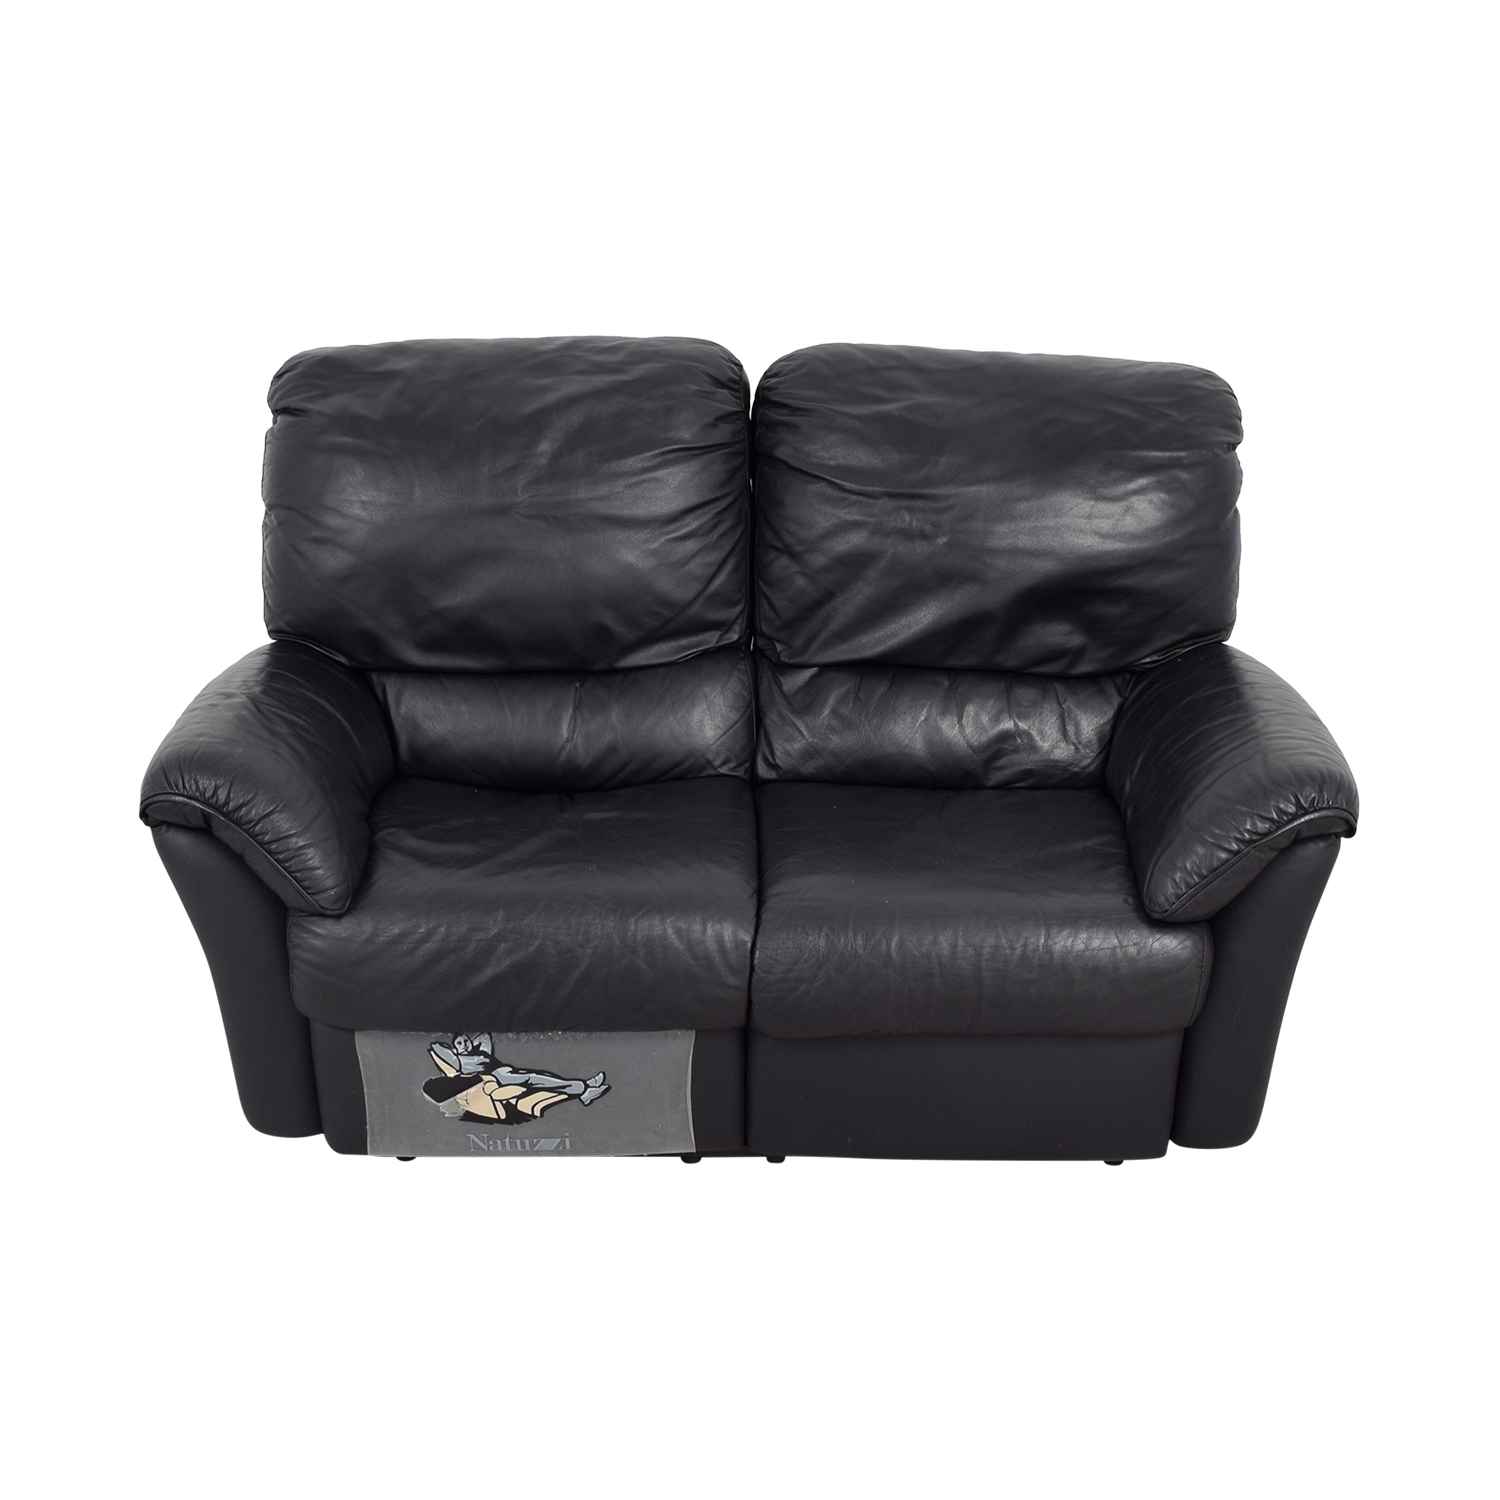 Natuzzi leather reclining sofa natuzzi editions b817 for Natuzzi leather sofa